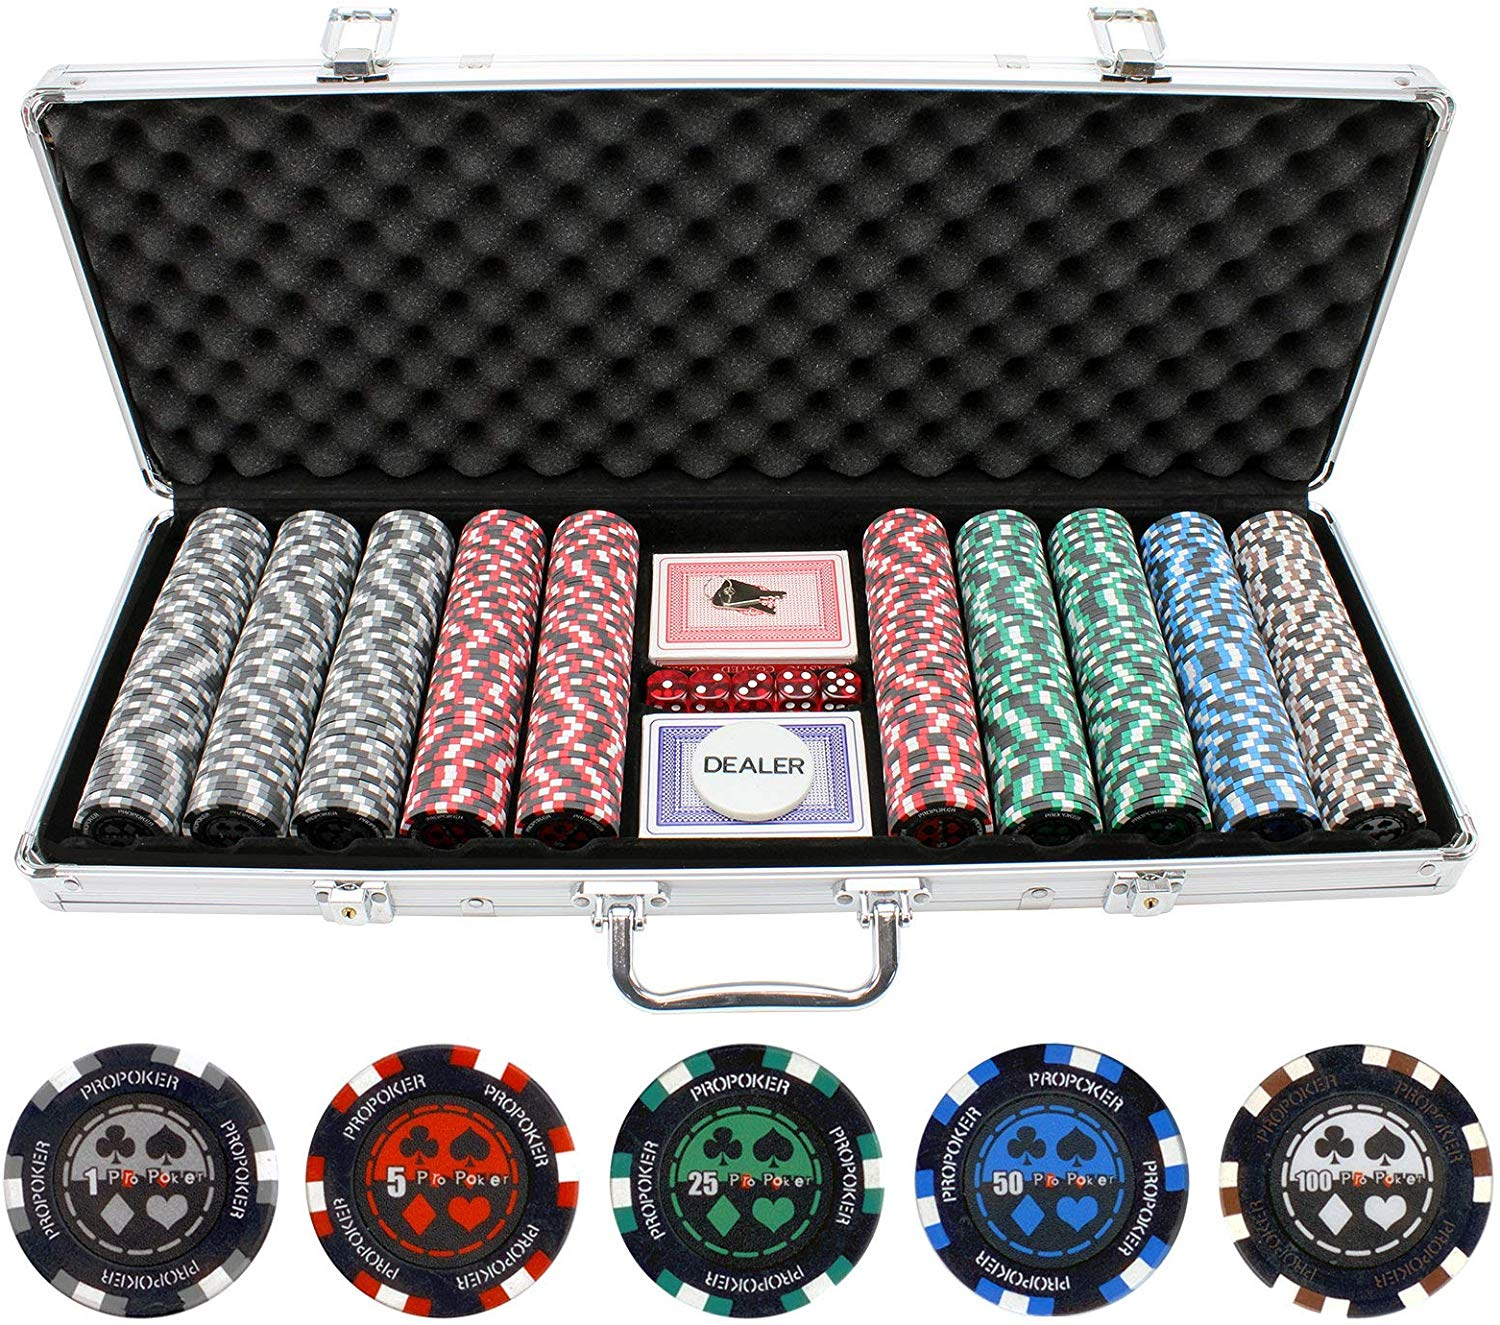 Pro Poker Clay Poker Set from JP Commerce